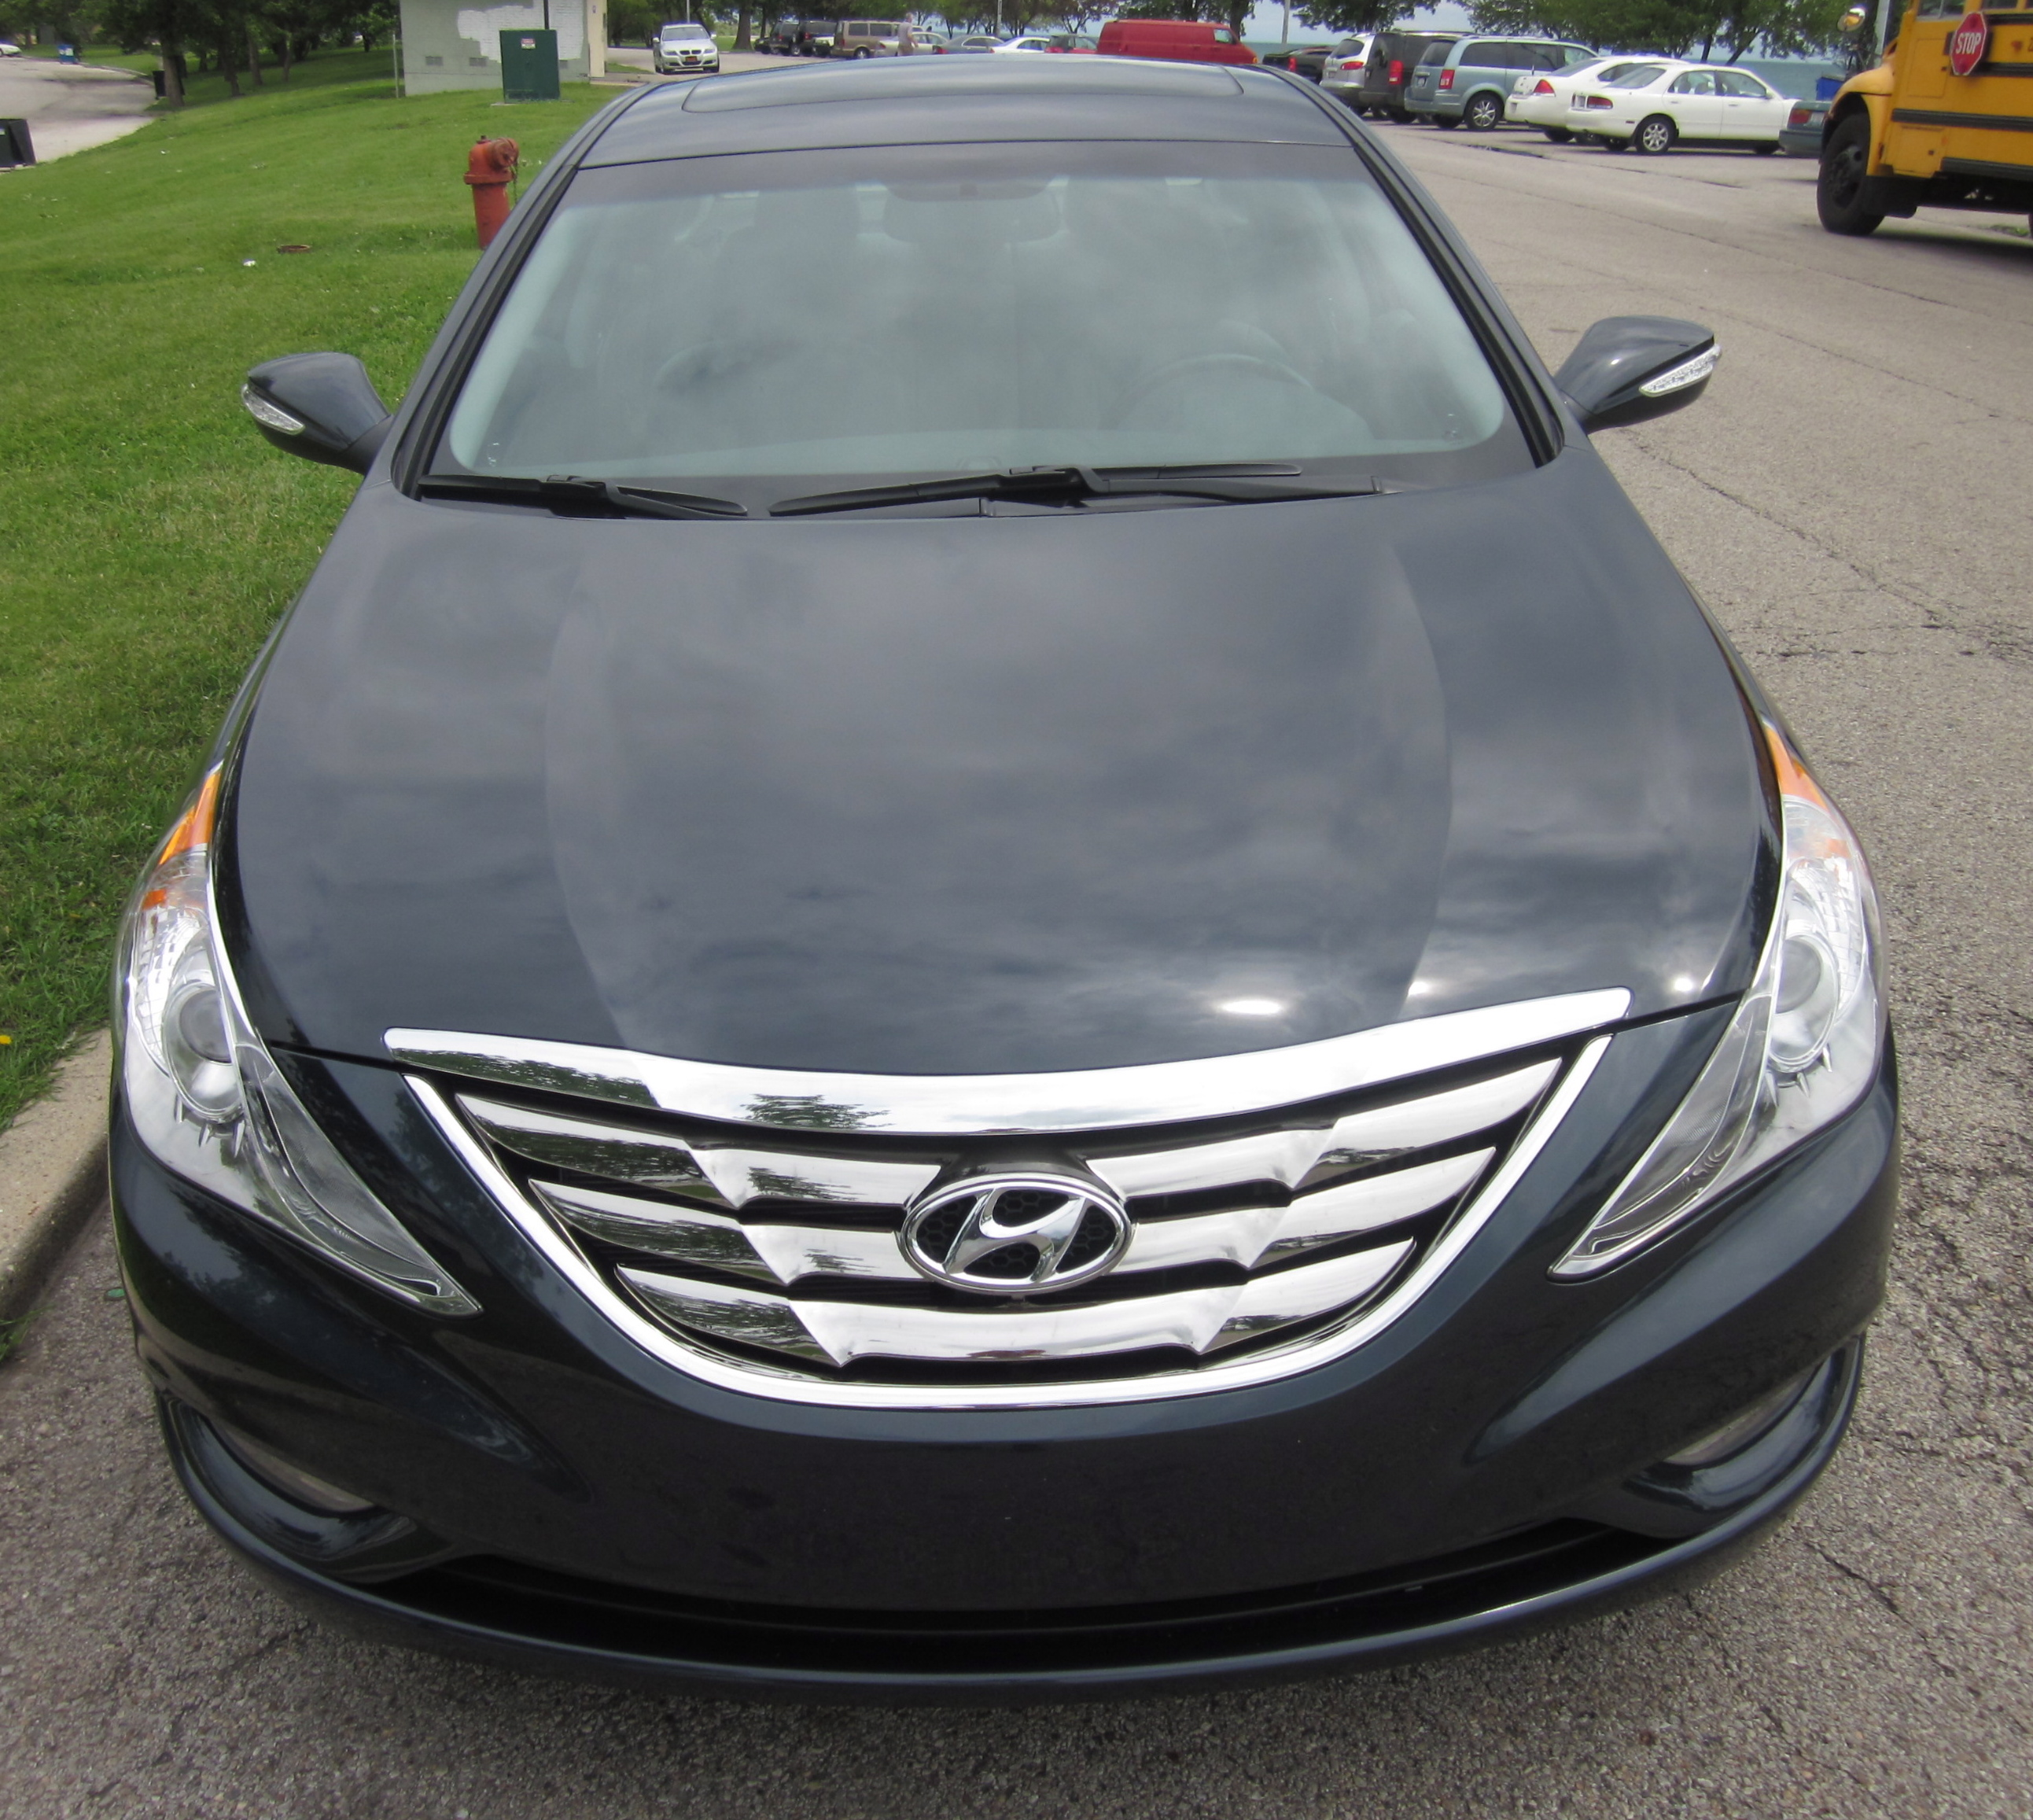 2011 Hyundai Sonata Turbo: 2011 Hyundai Sonata Limited Turbo Review